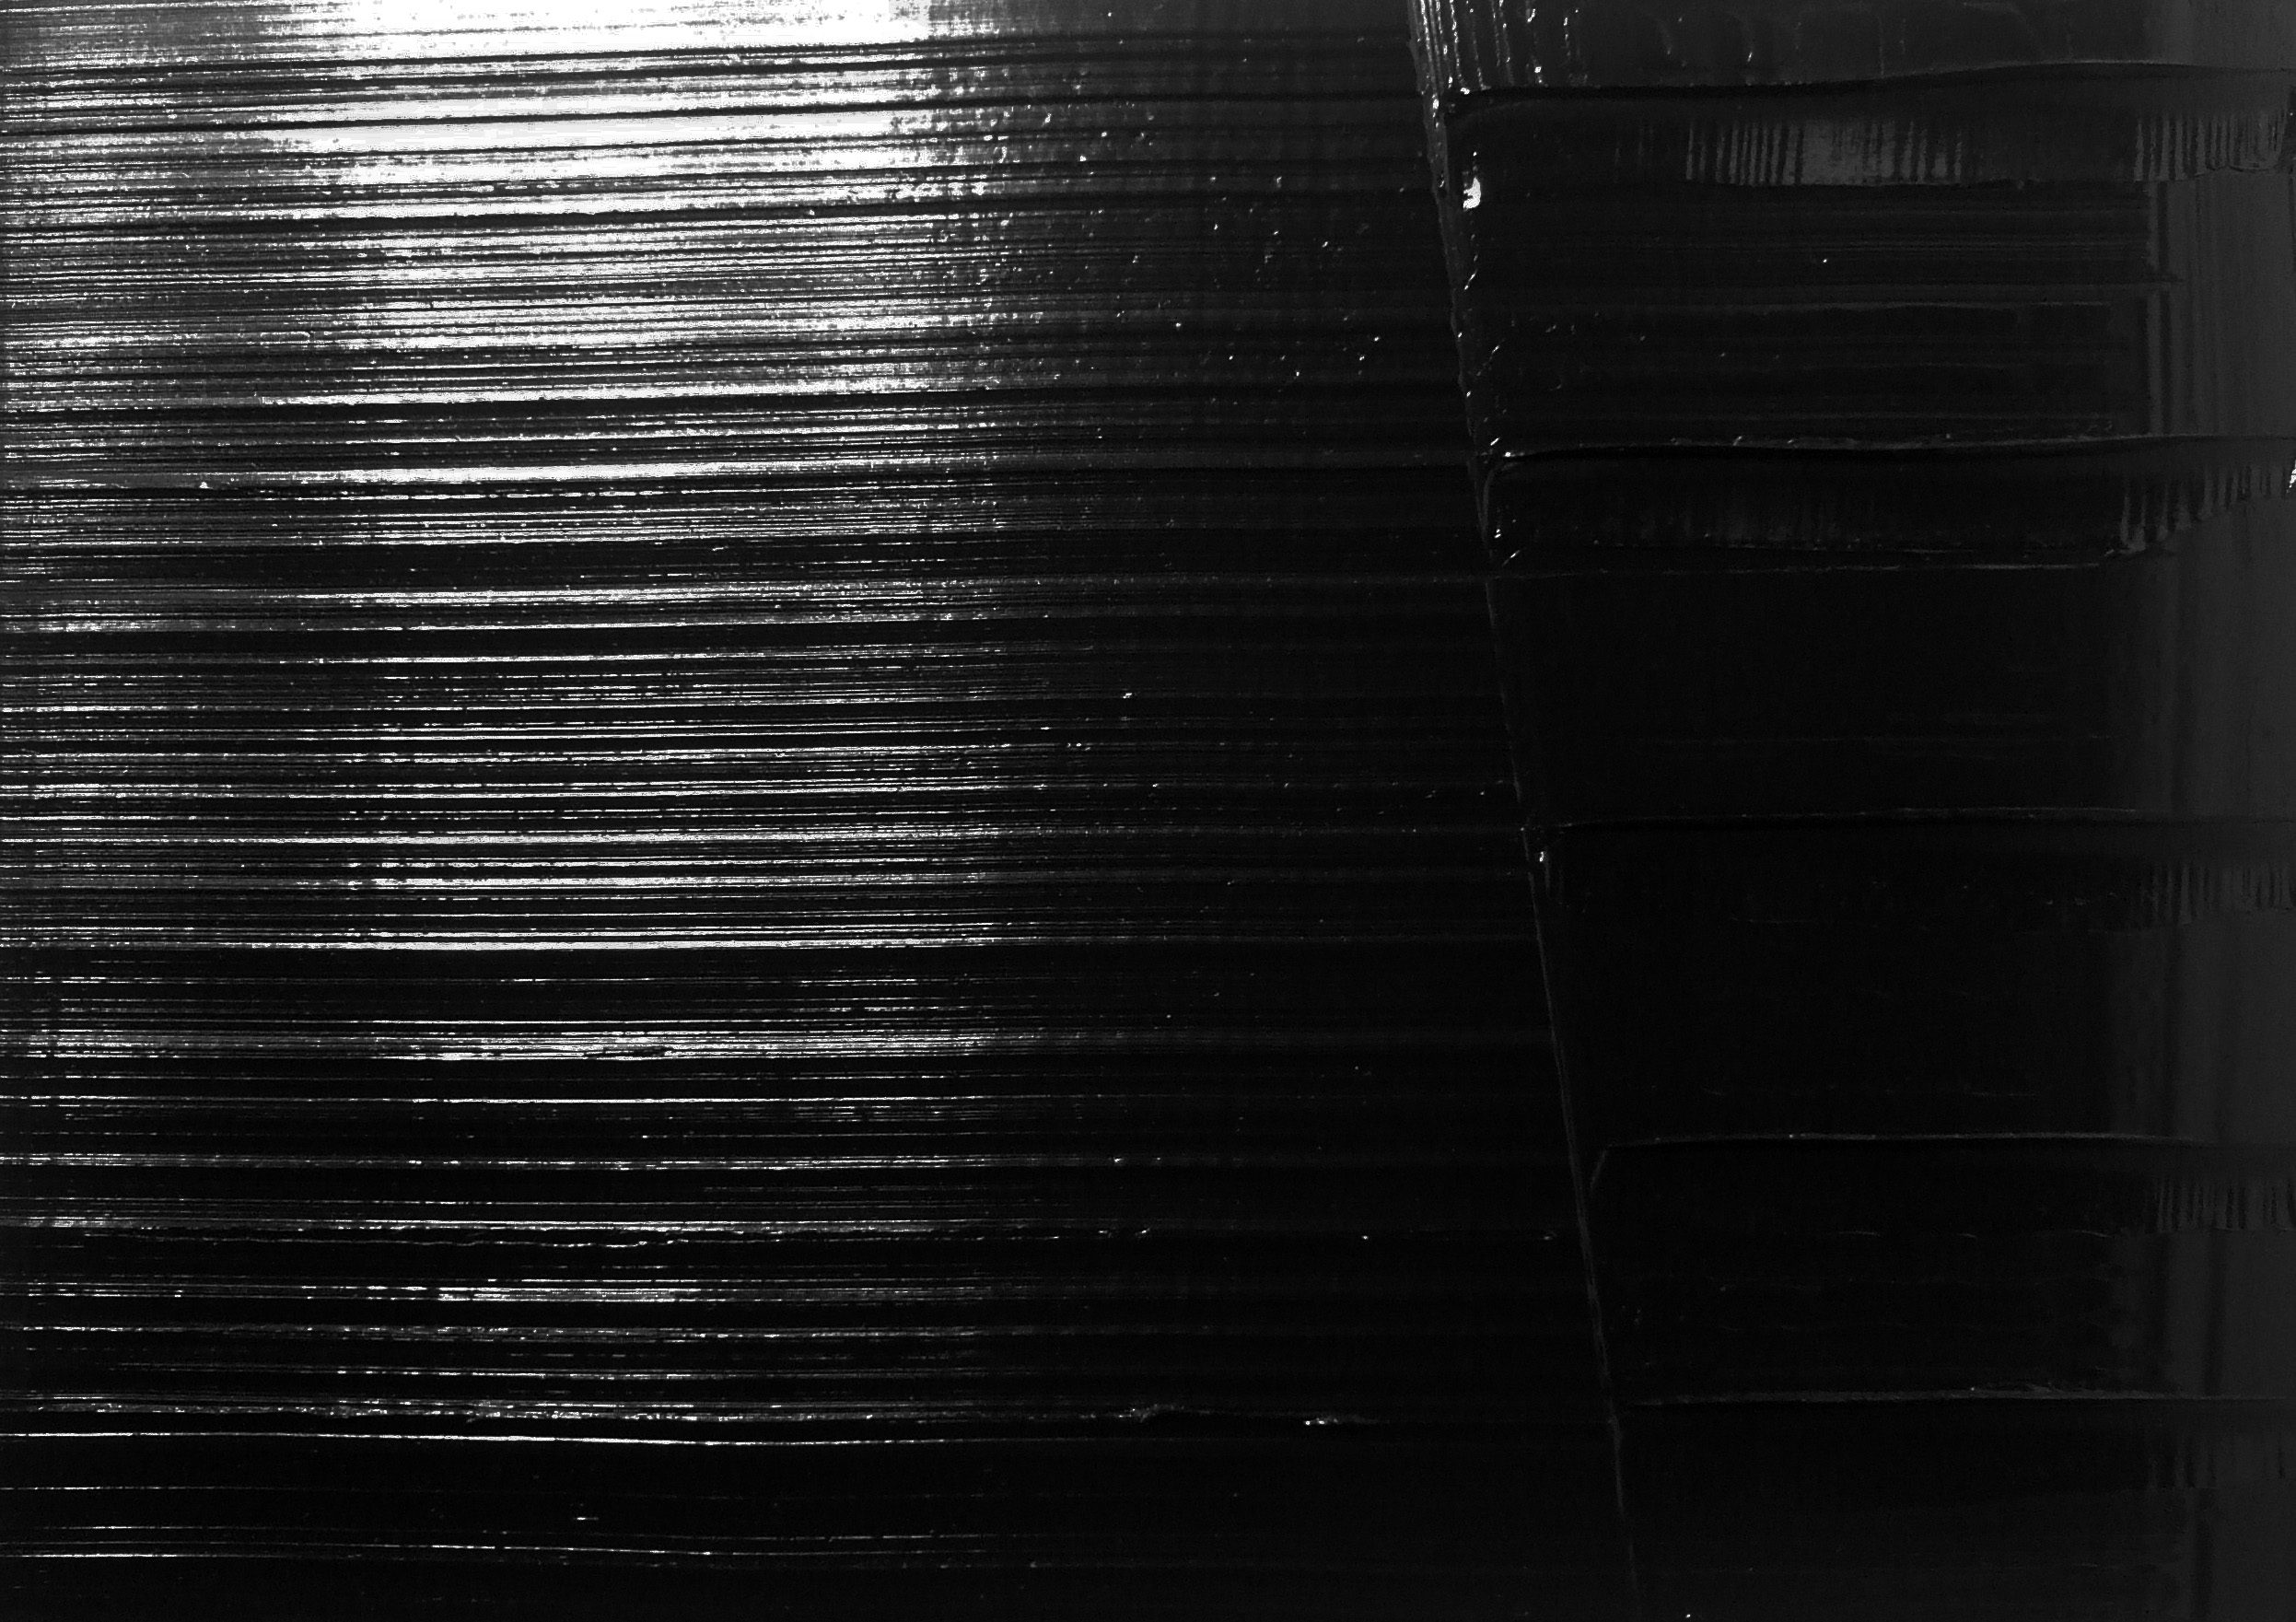 pierre soulages l 39 oeuvre au noir le blog d art contemporain de kazoart. Black Bedroom Furniture Sets. Home Design Ideas